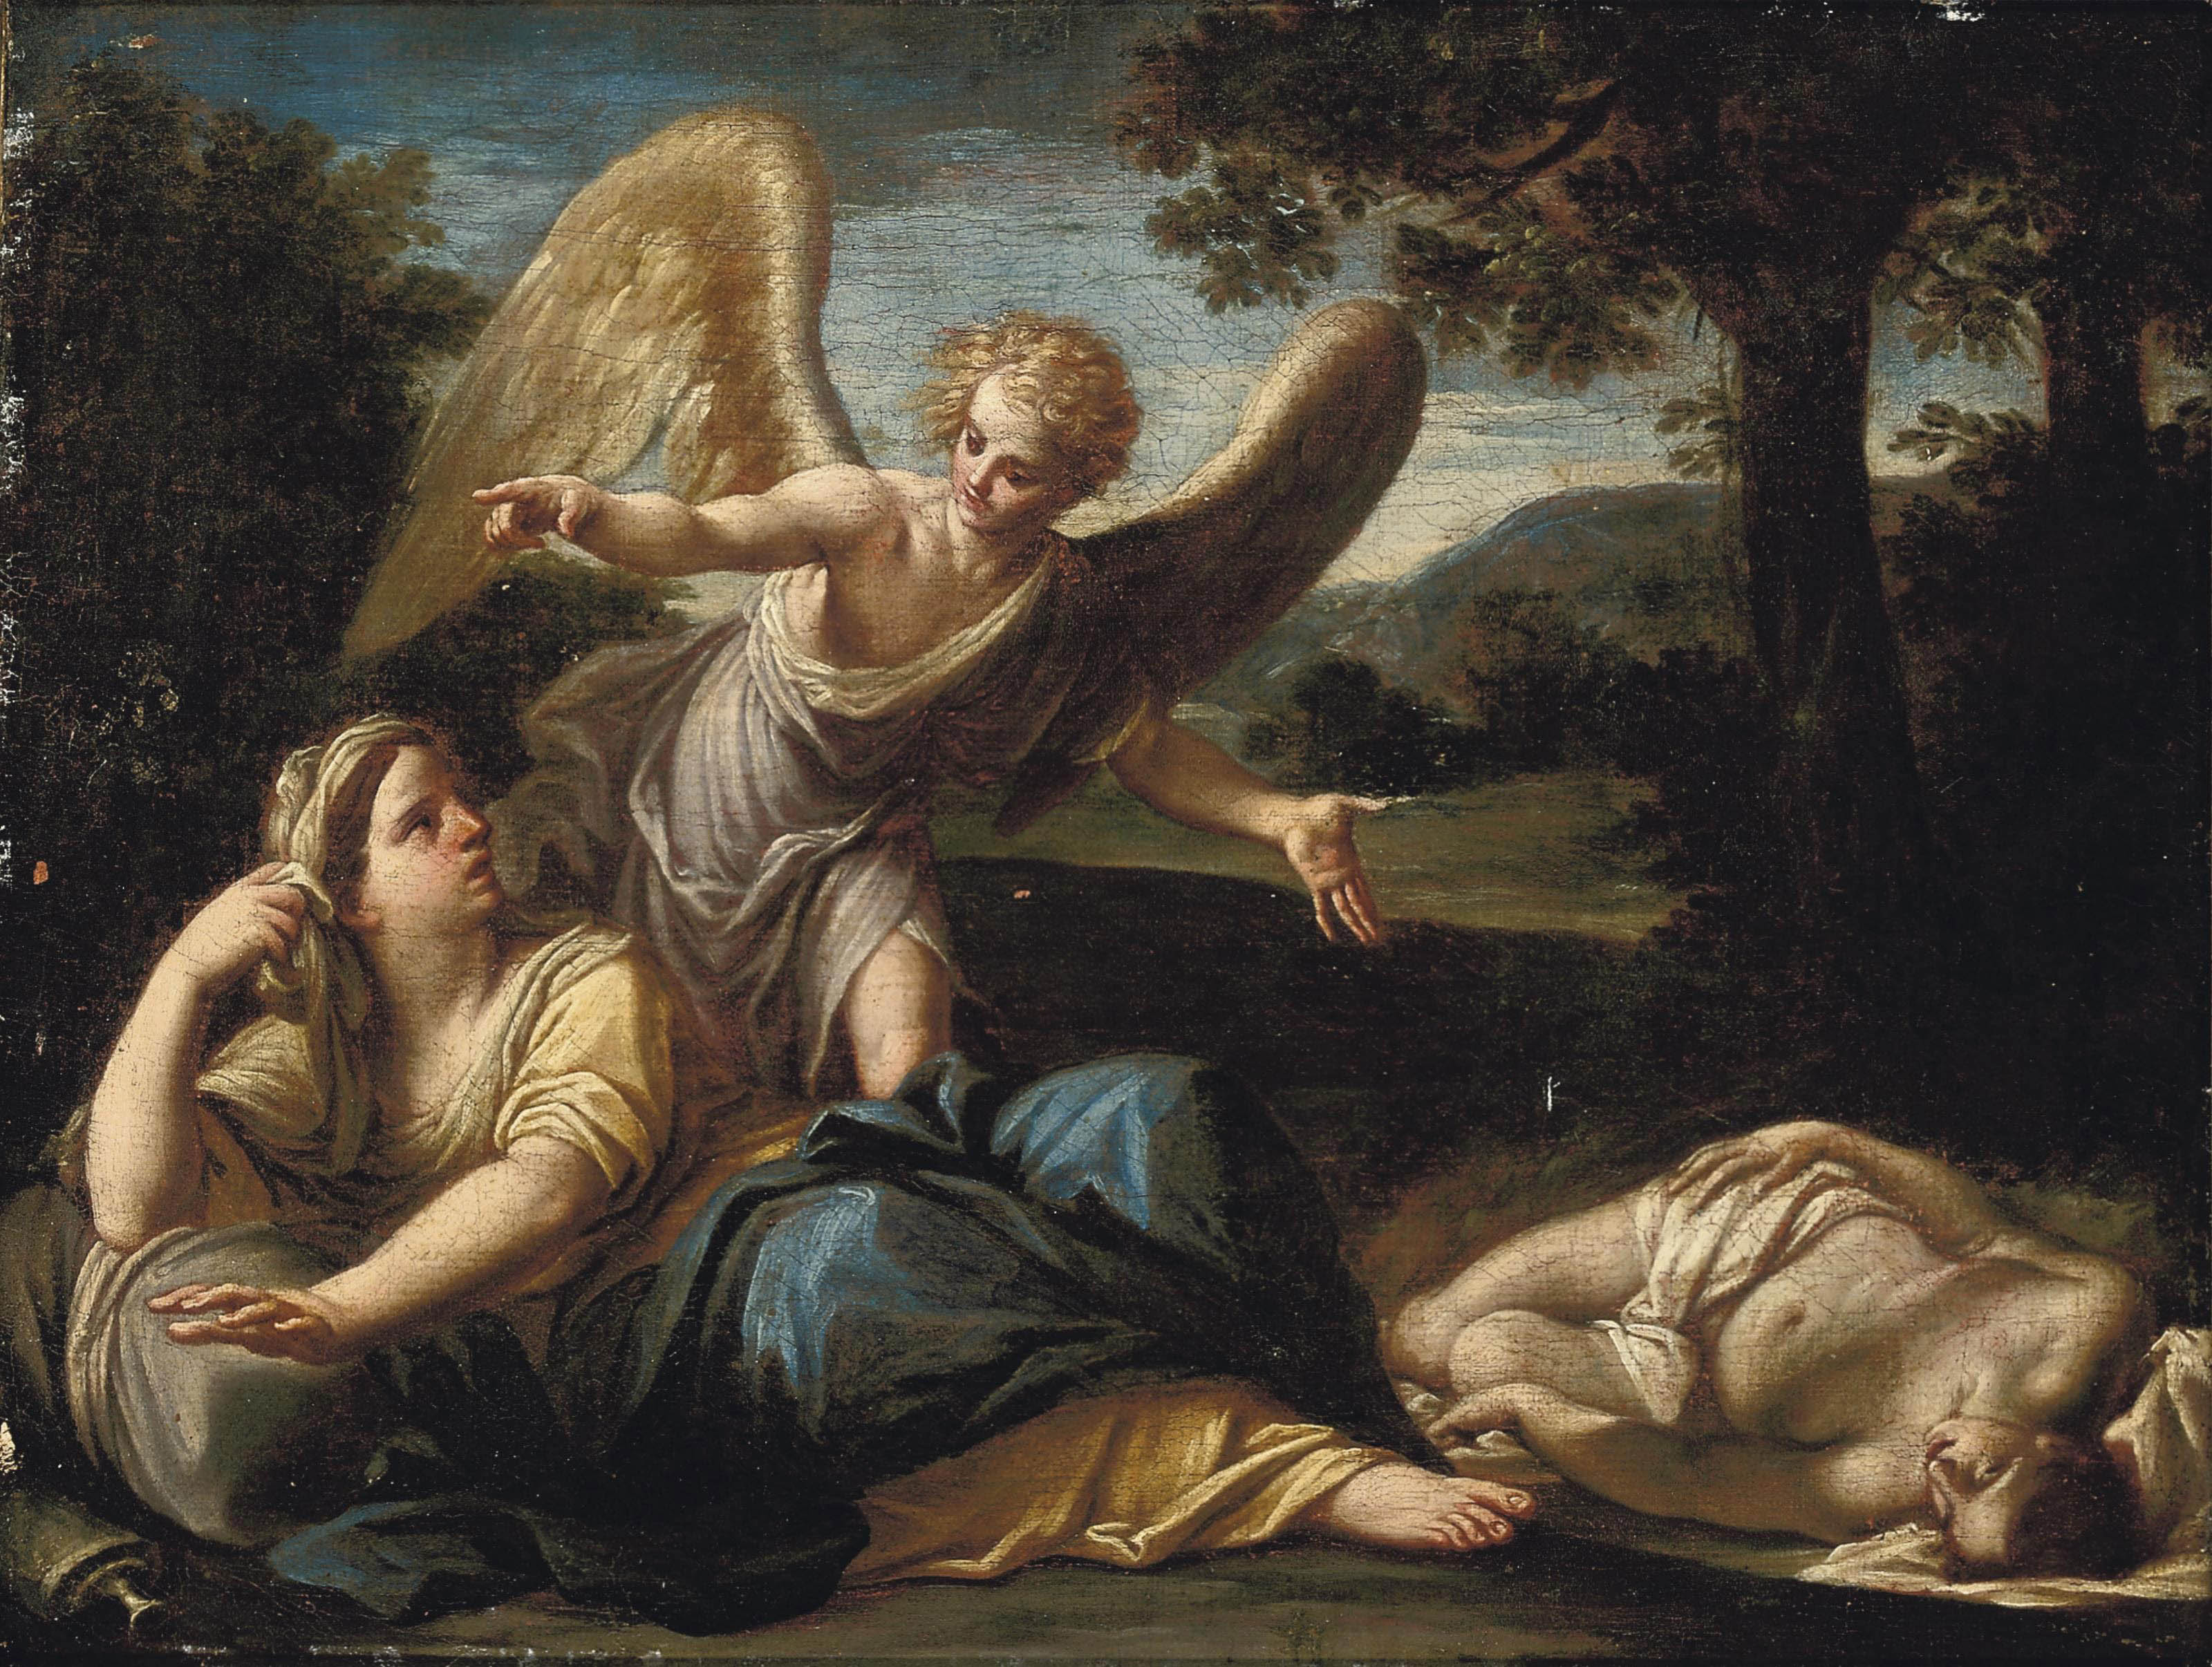 The Angel appearing to Hagar and Ishmael